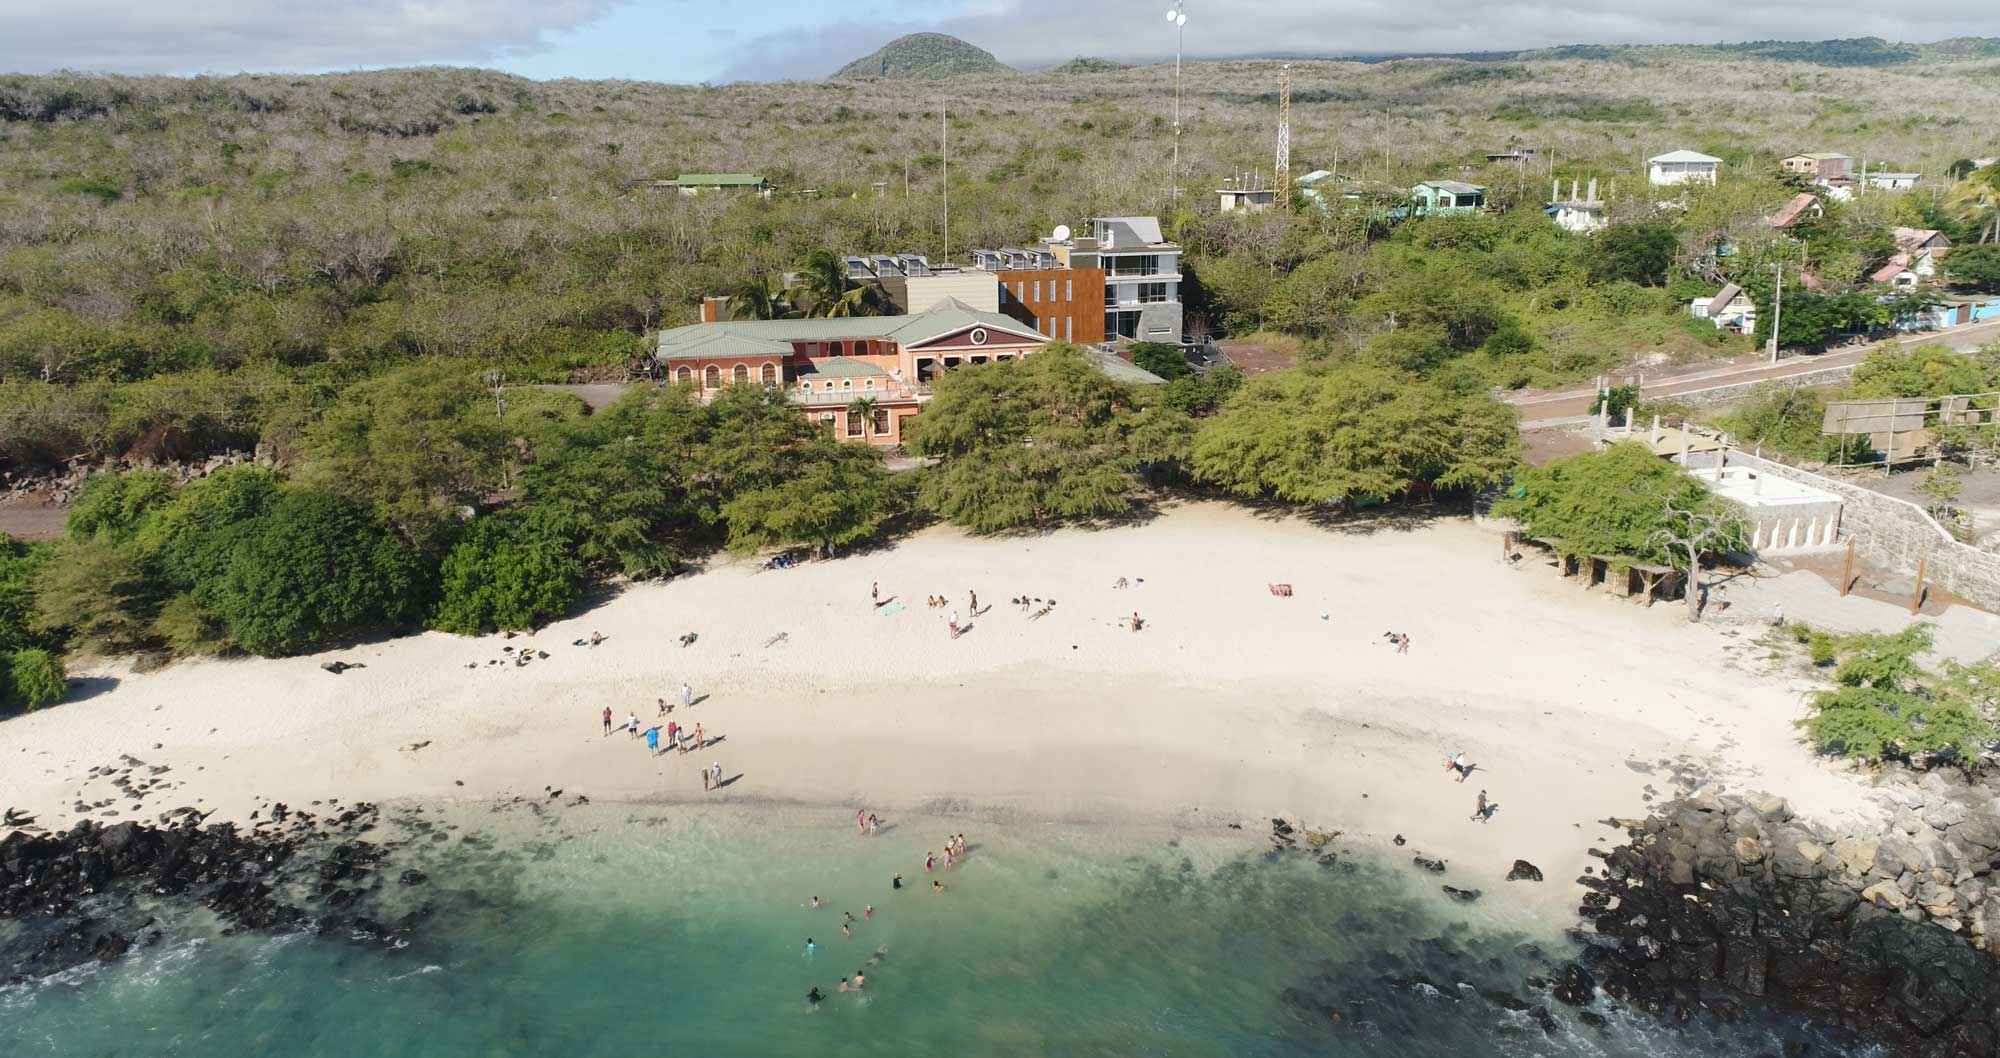 An overview shot of the Galapagos Science Center in the Galapagos Islands.